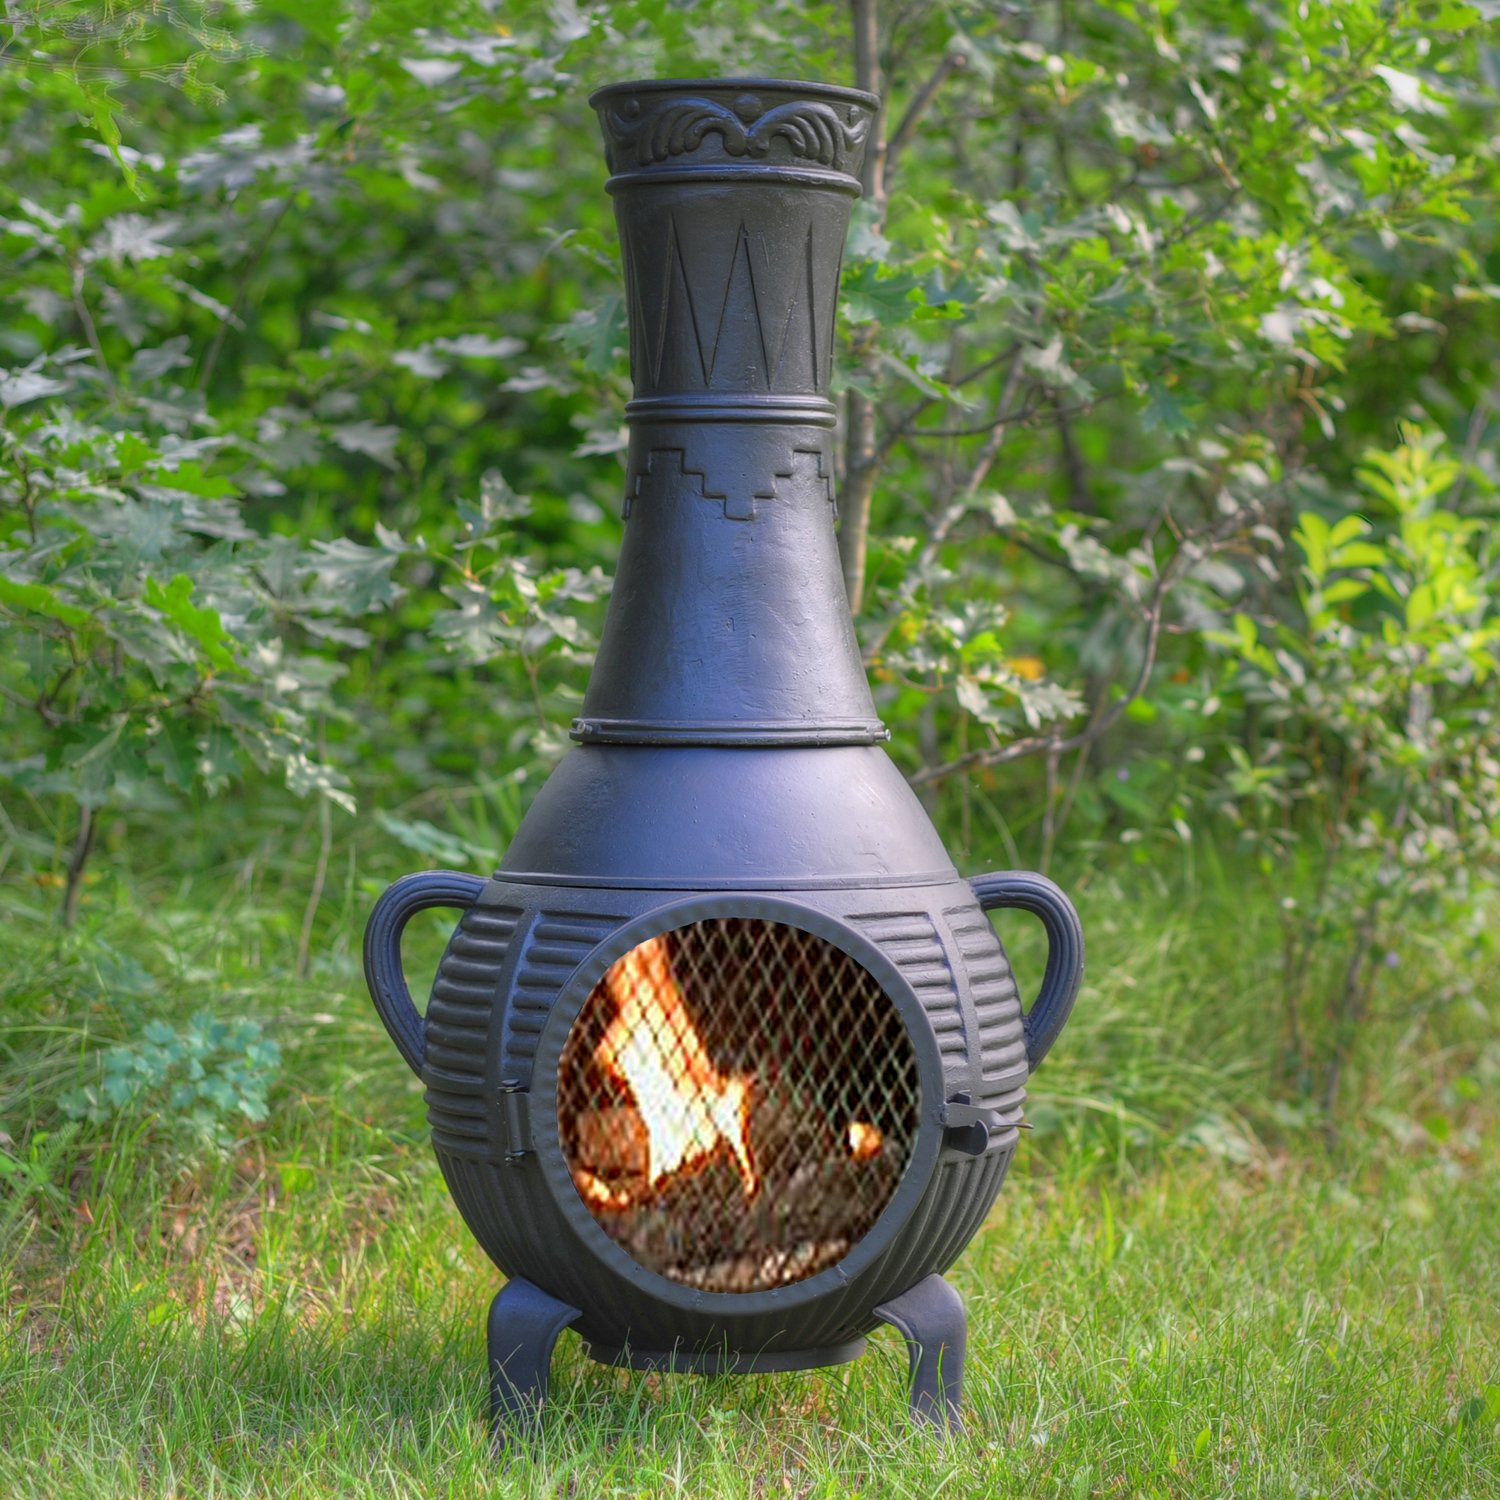 The Blue Rooster Co. Pine Style Cast Aluminum Wood Burning Chiminea in Charcoal.